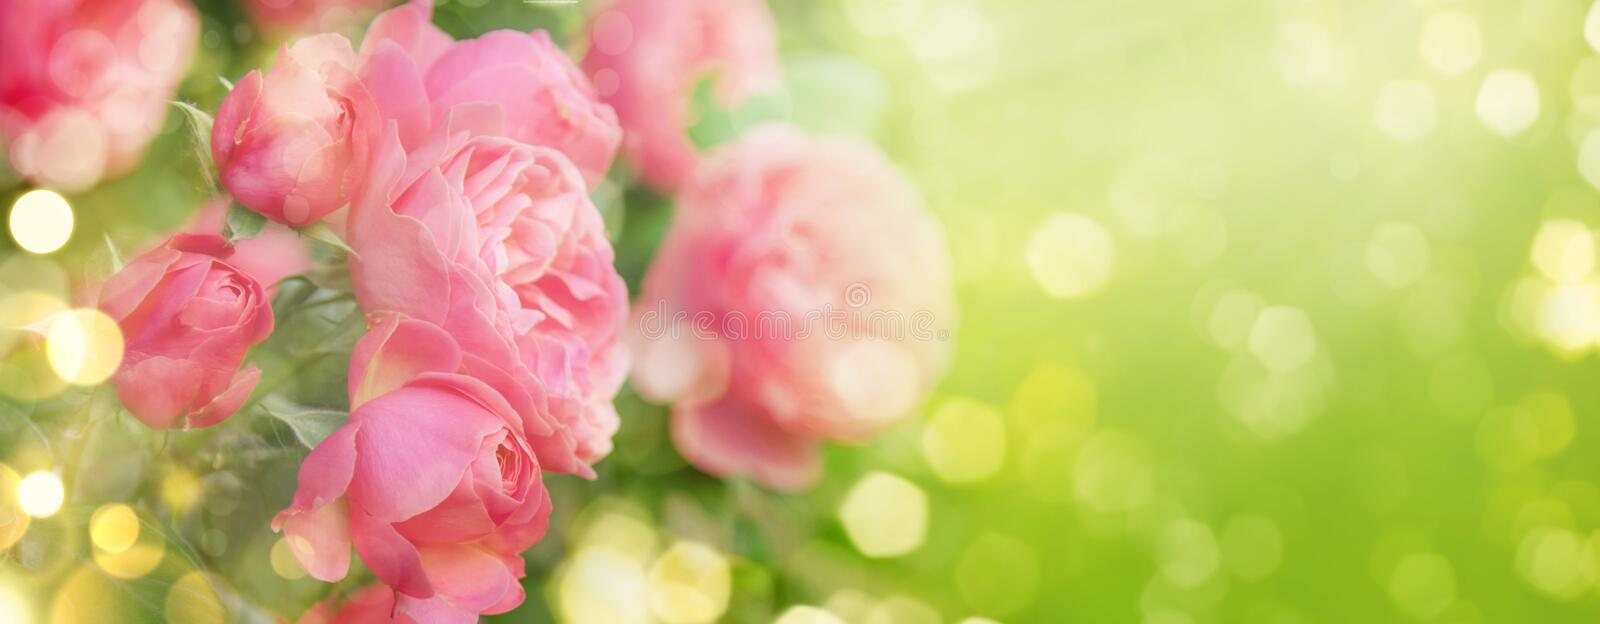 Pink roses on natural green background, summer landscape, banner format. Pink roses on natural green background, summer landscape, banner  format stock photography